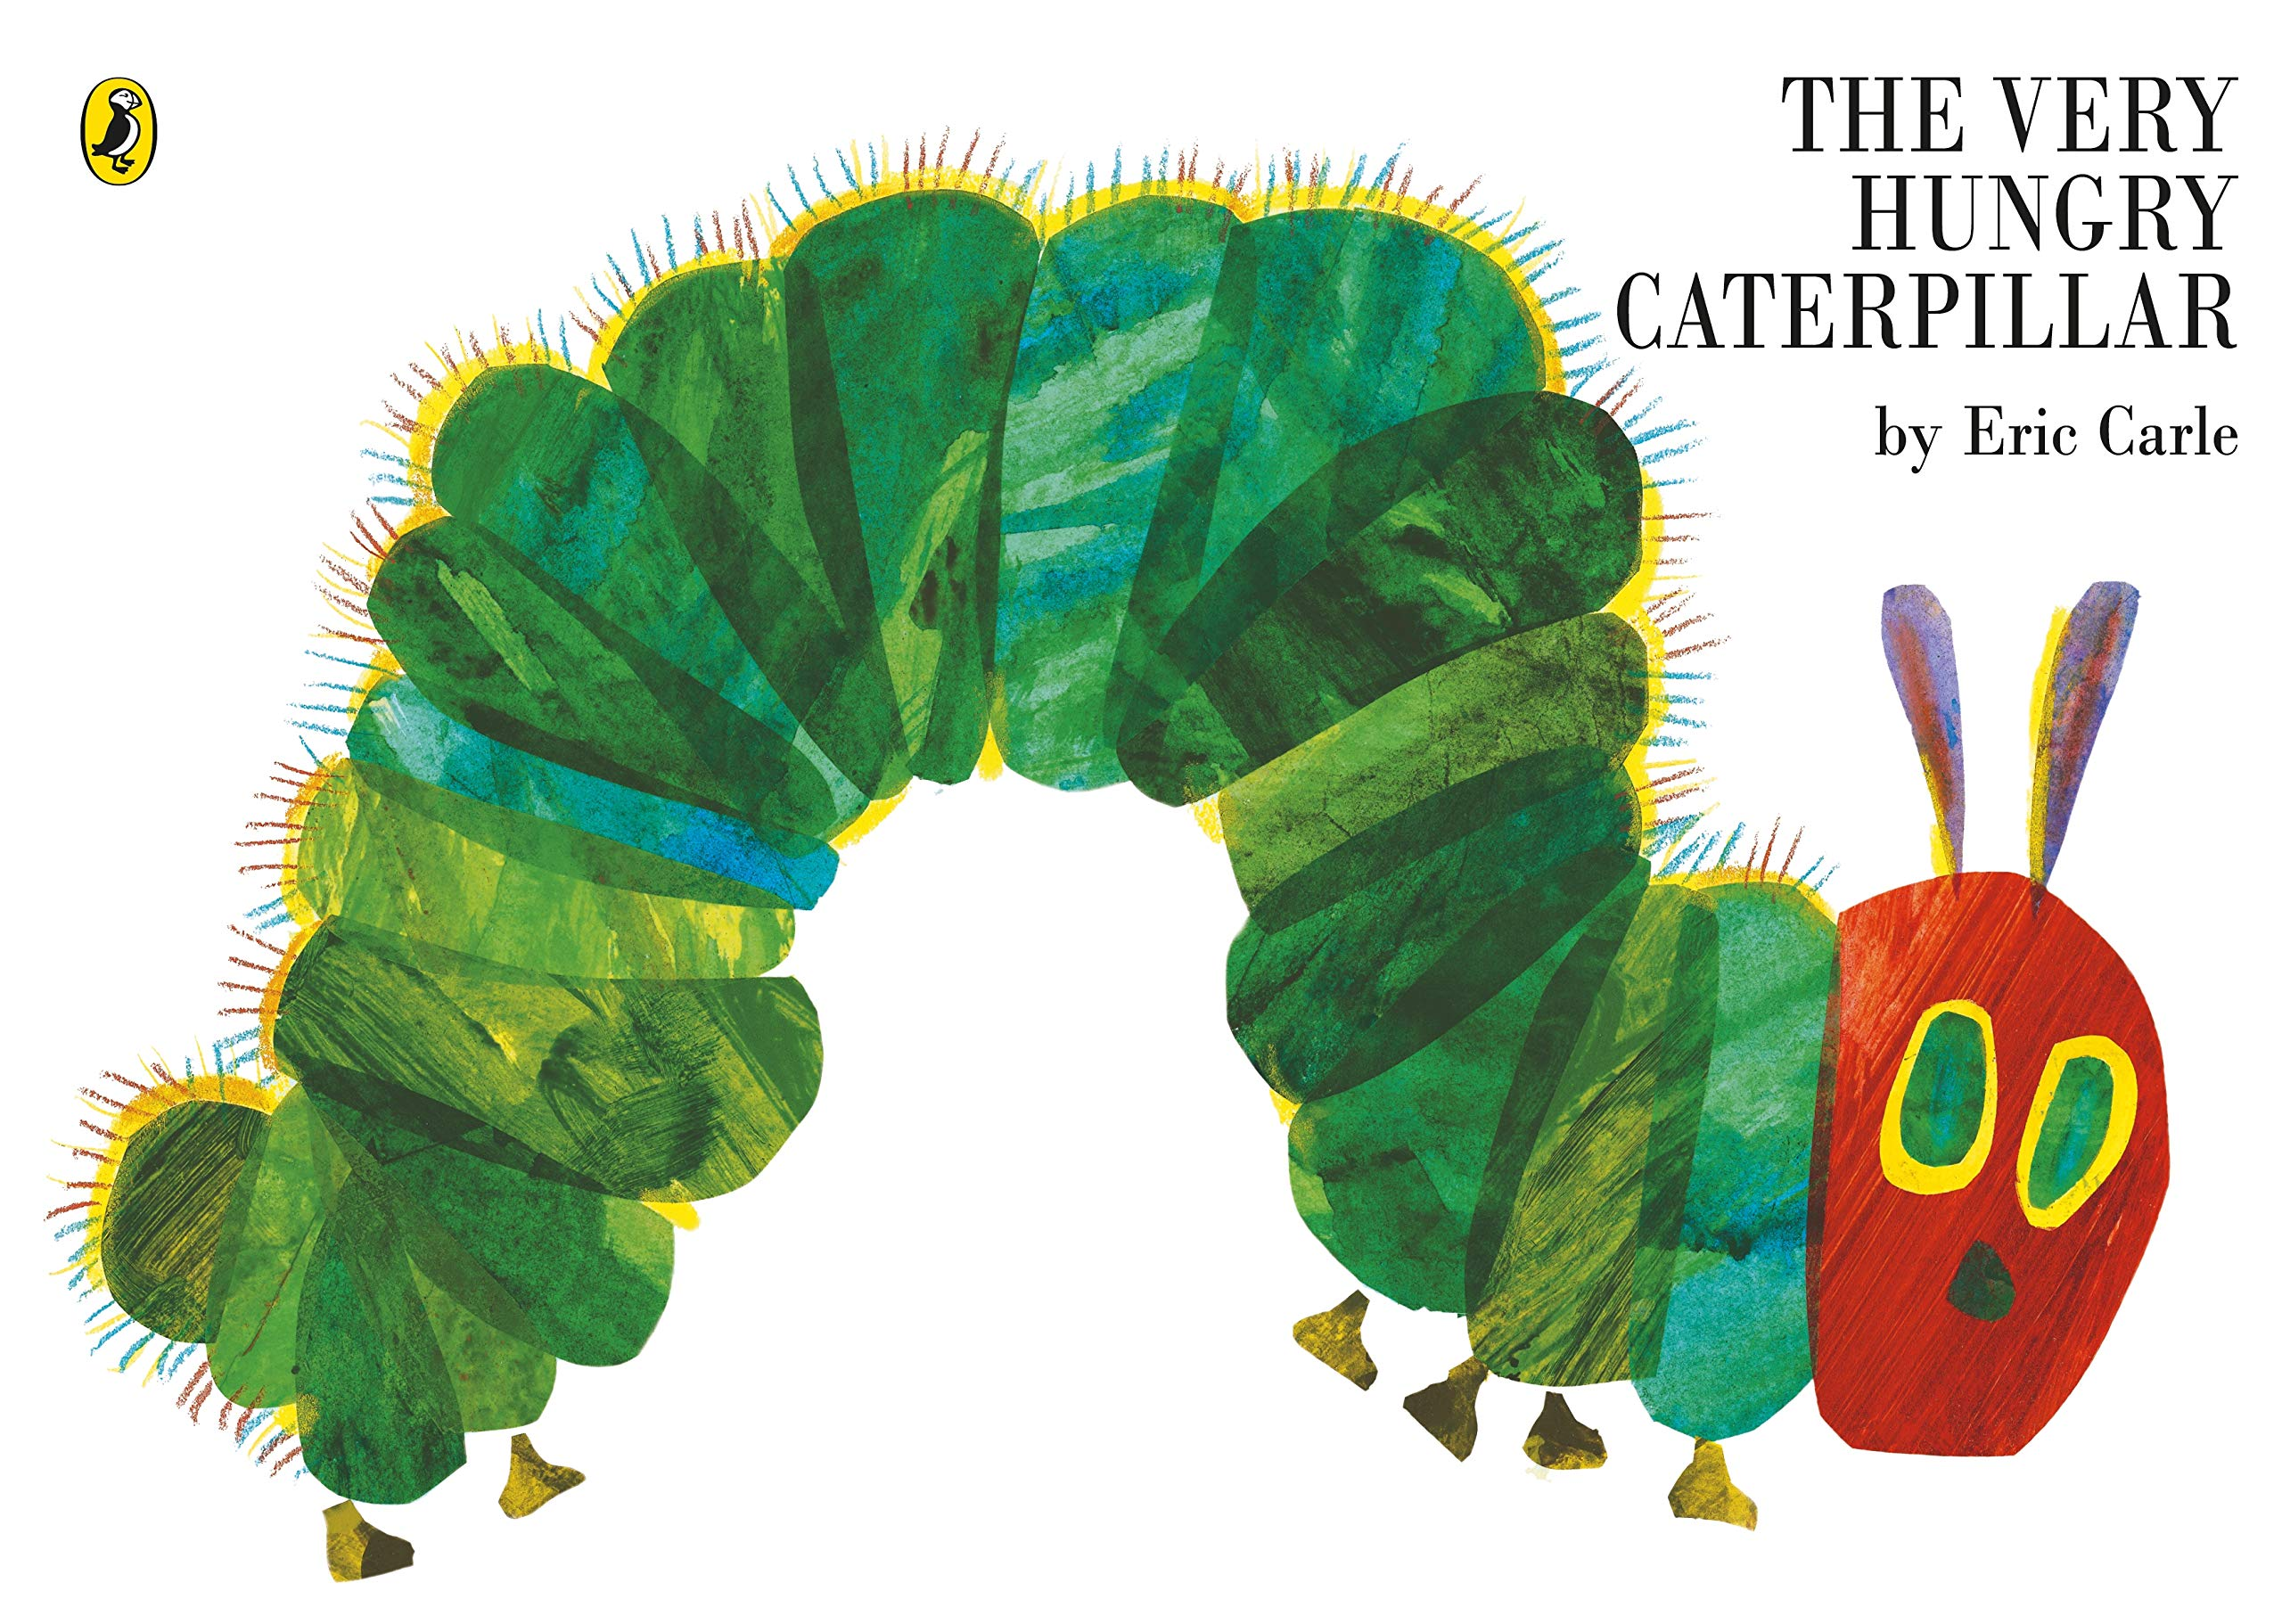 The Very Hungry Caterpillar [Board Book]: Amazon.co.uk: Carle ...